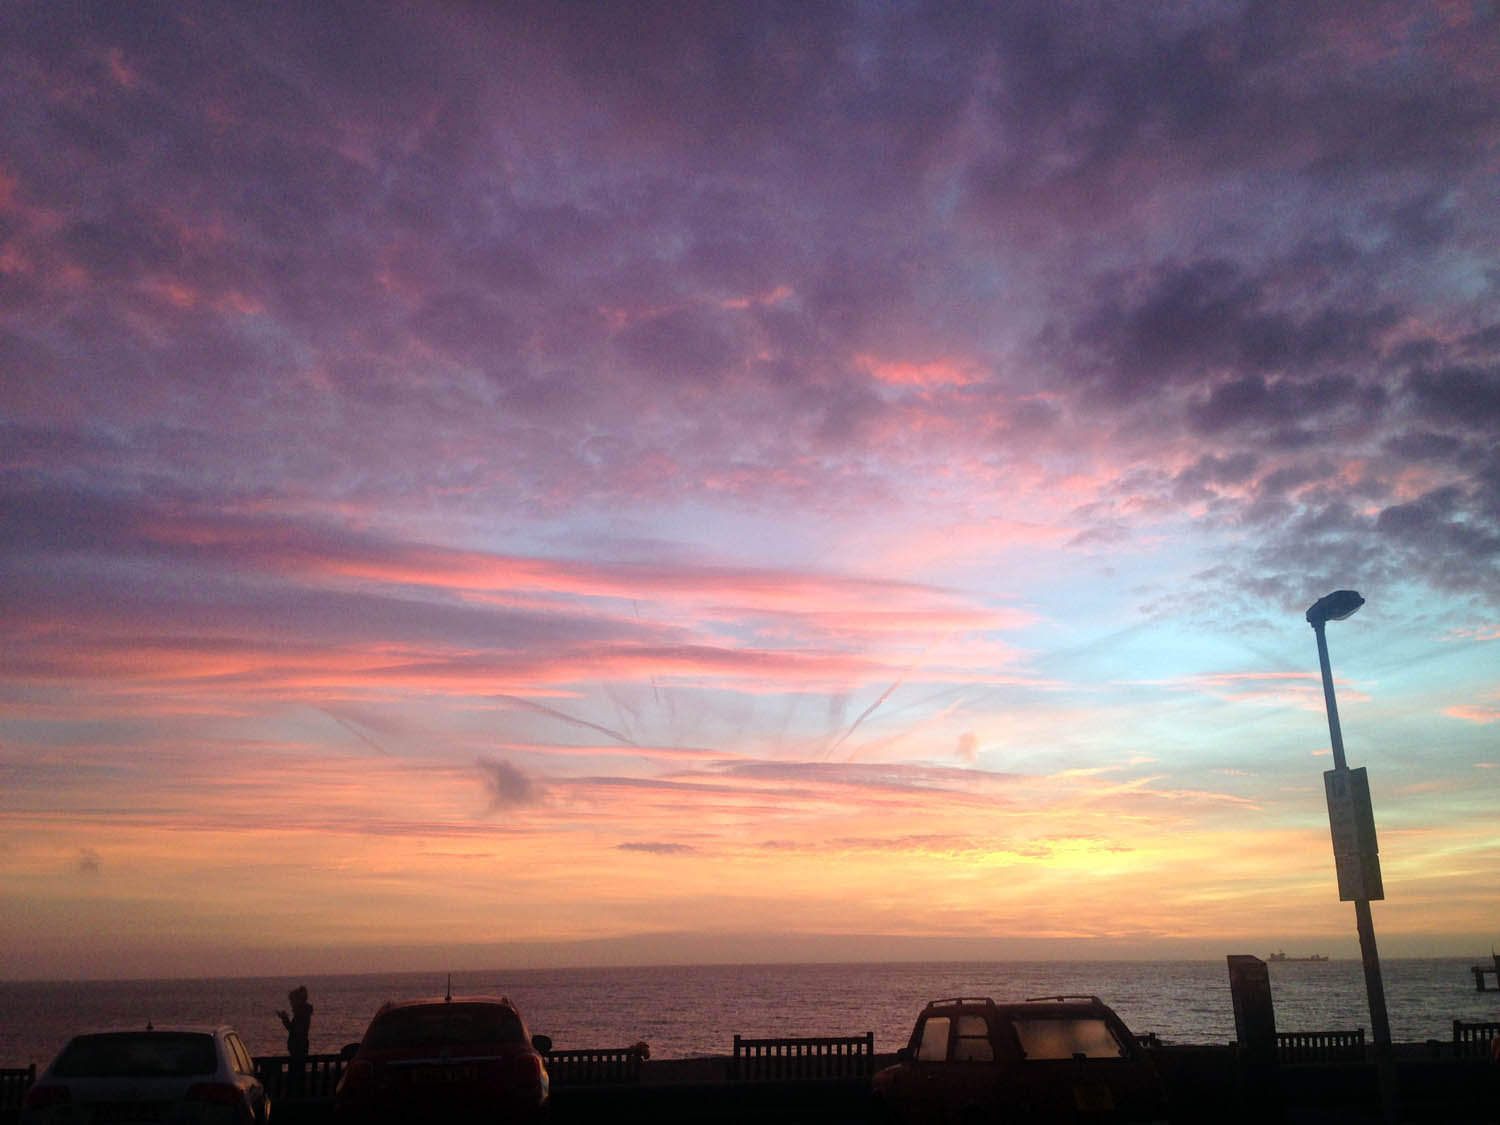 Up early for our website photoshoot with photographer, Petra. What a beautiful sunrise!